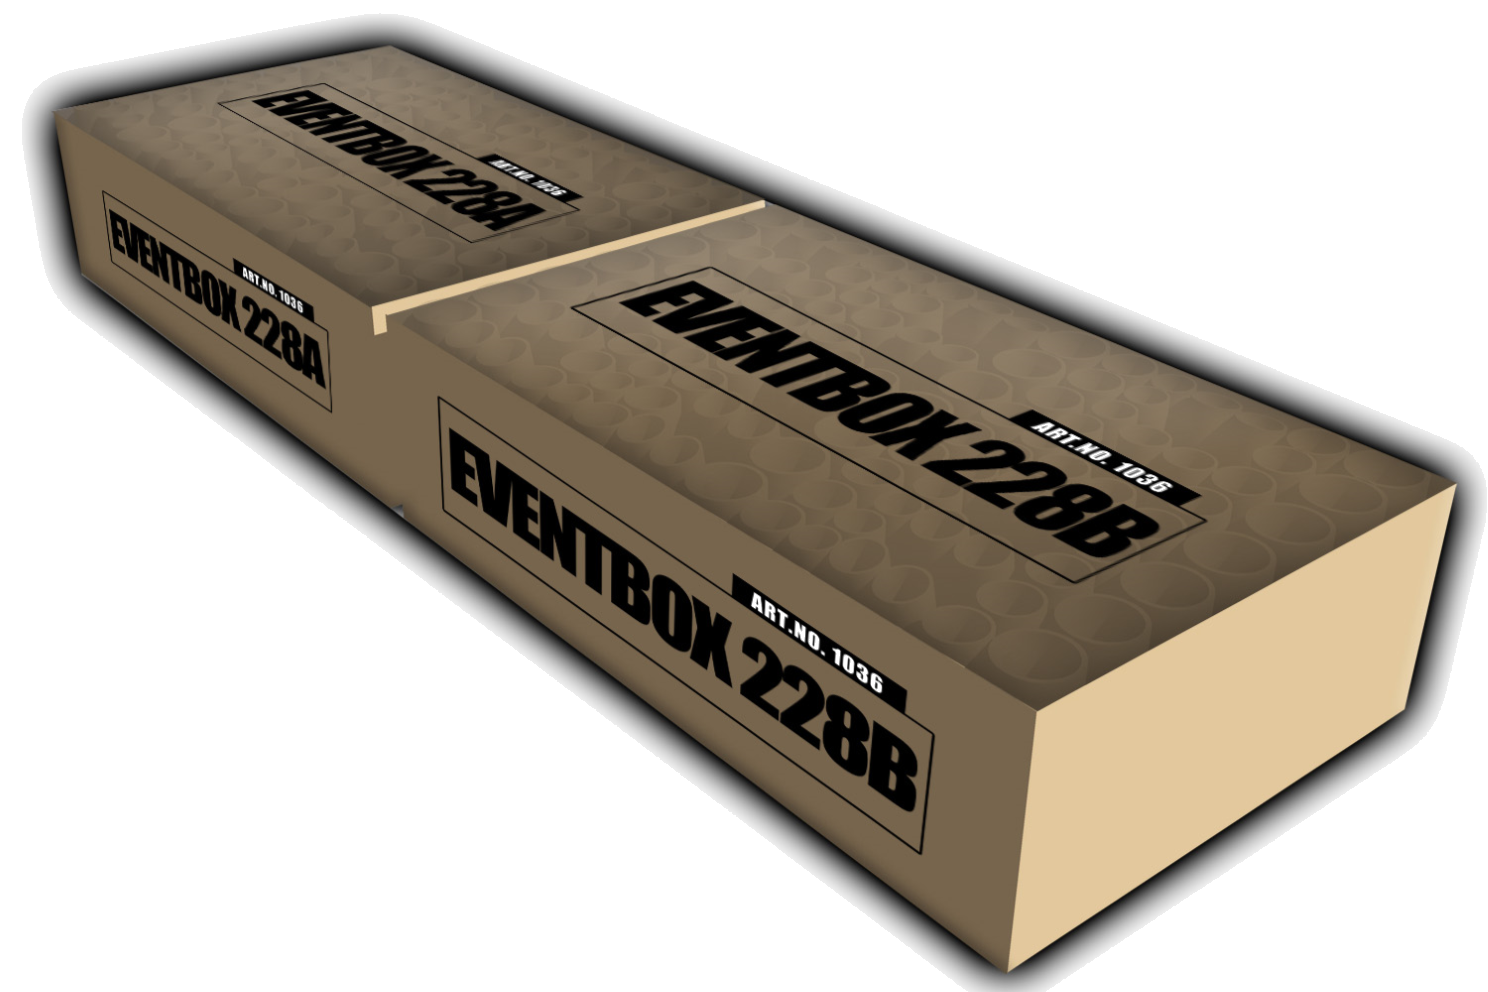 Eventbox 228 Box